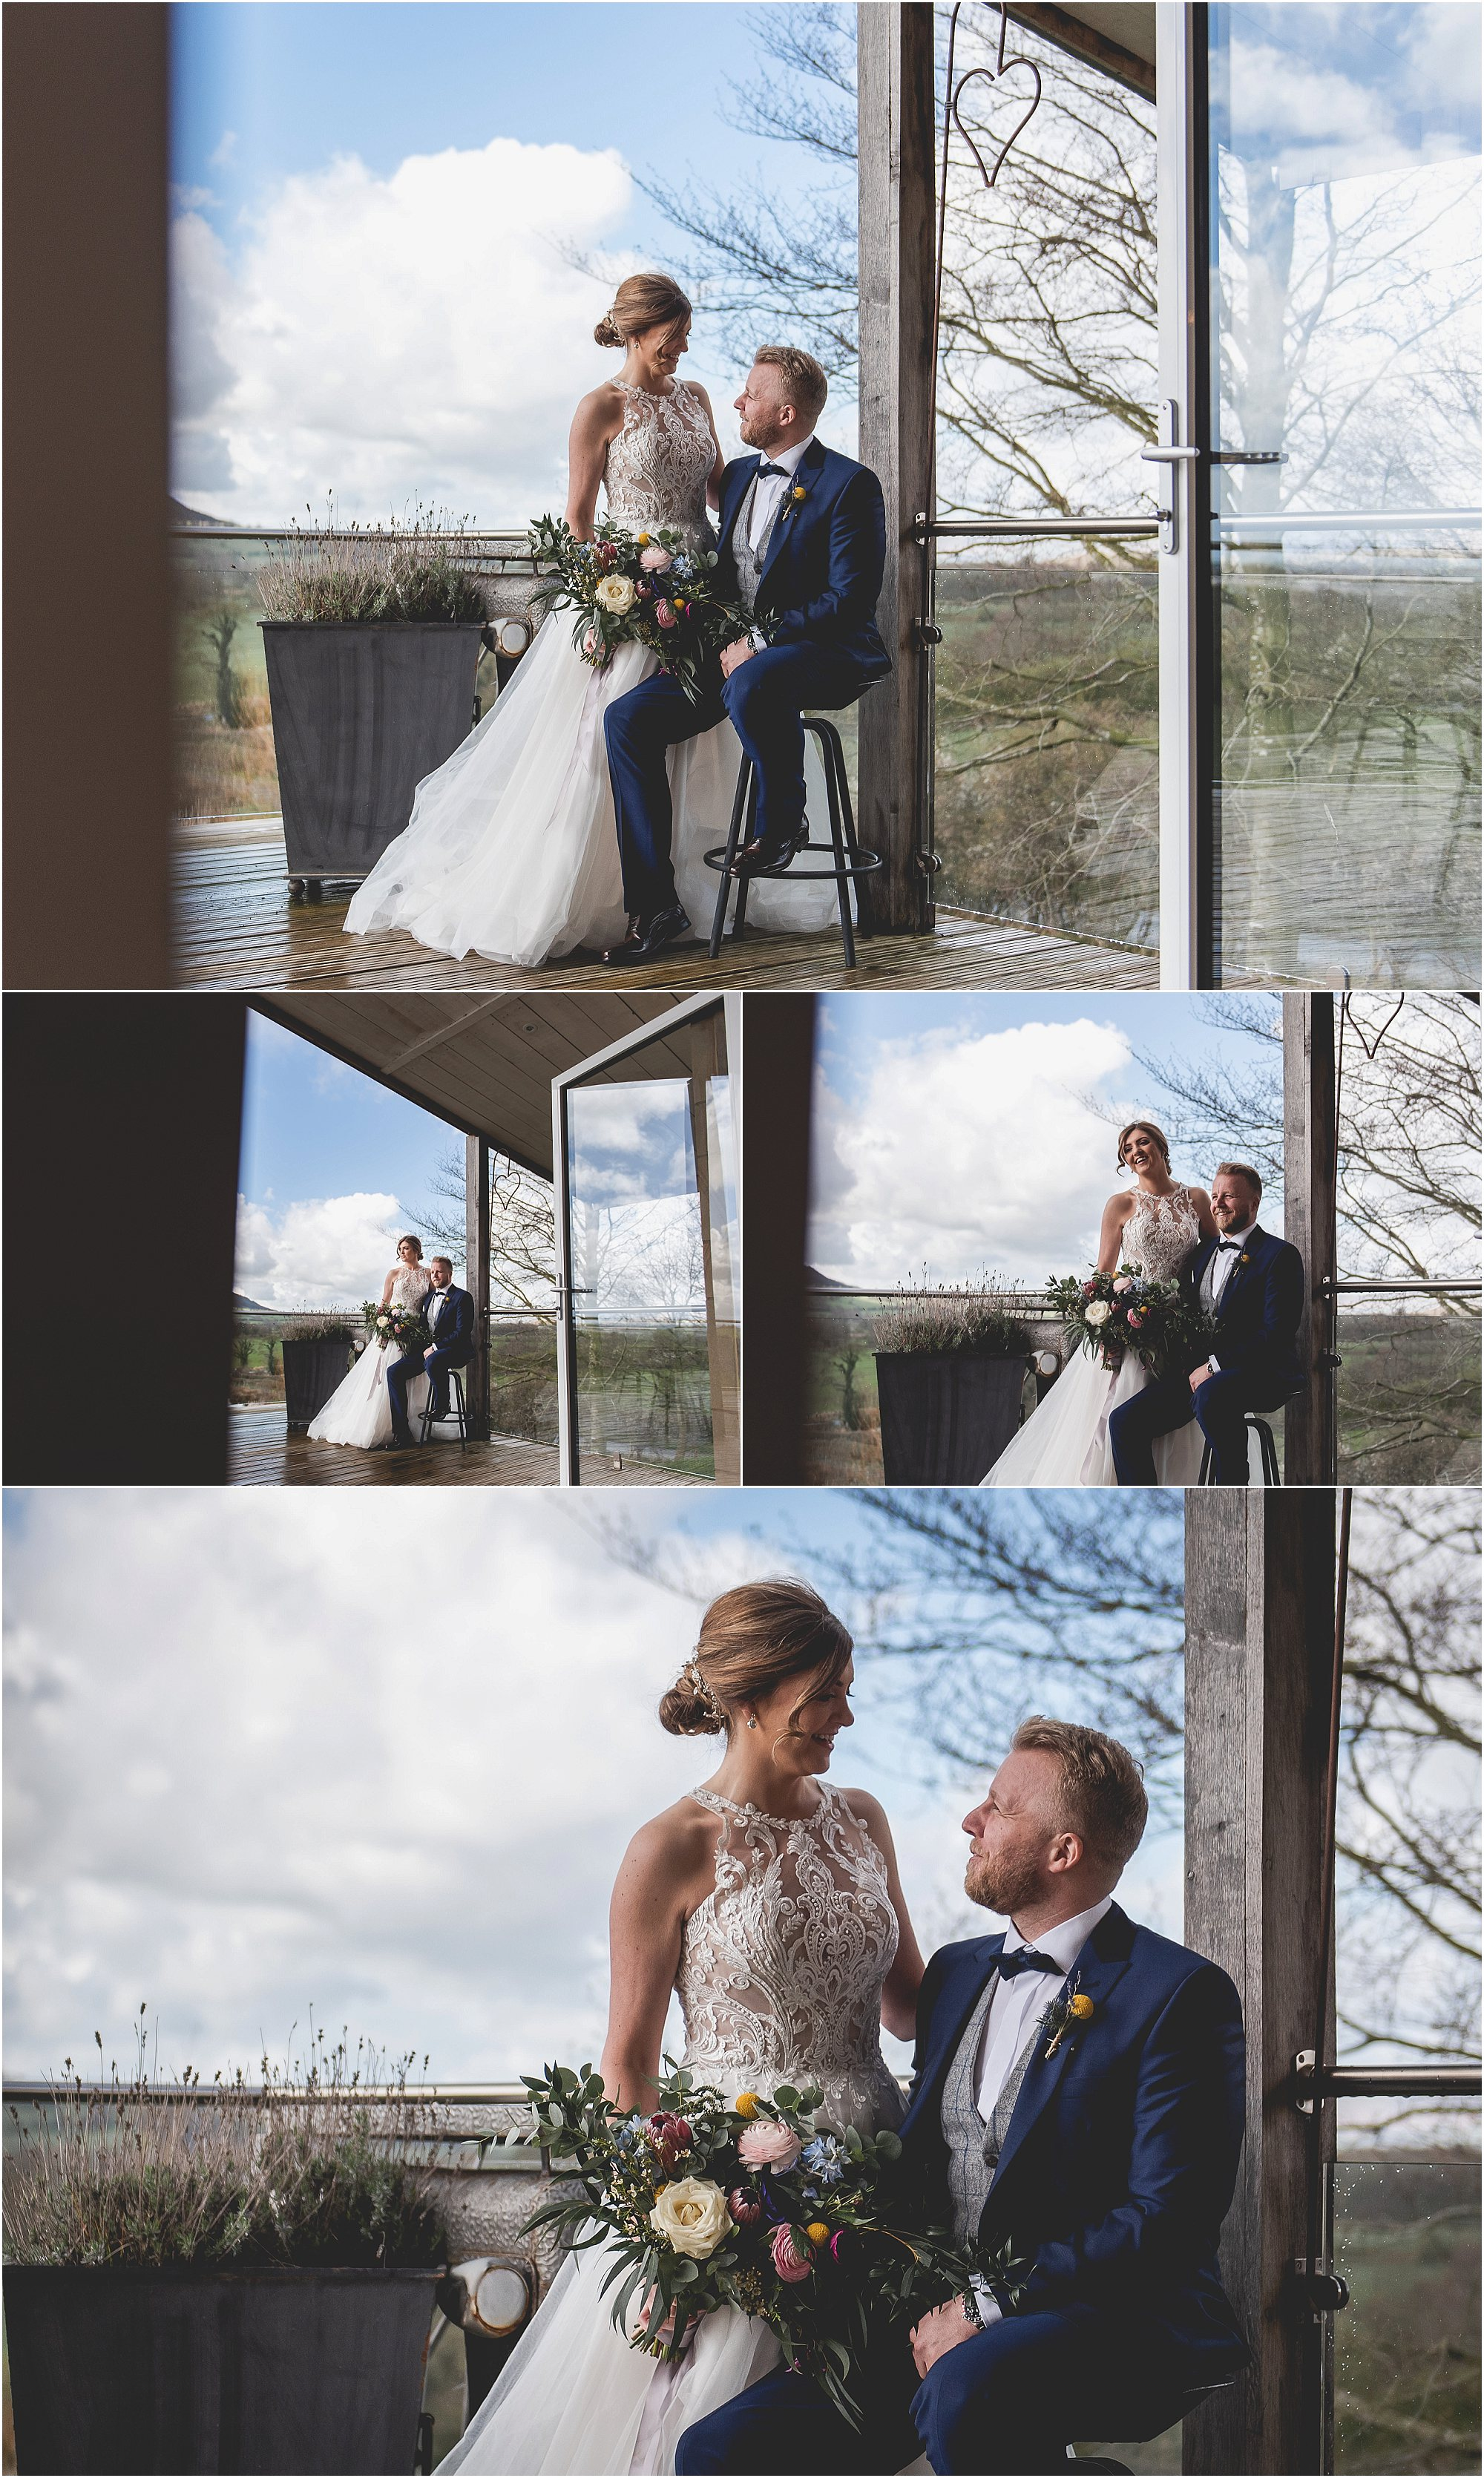 having an intimate moment on your wedding day at Bashall barn